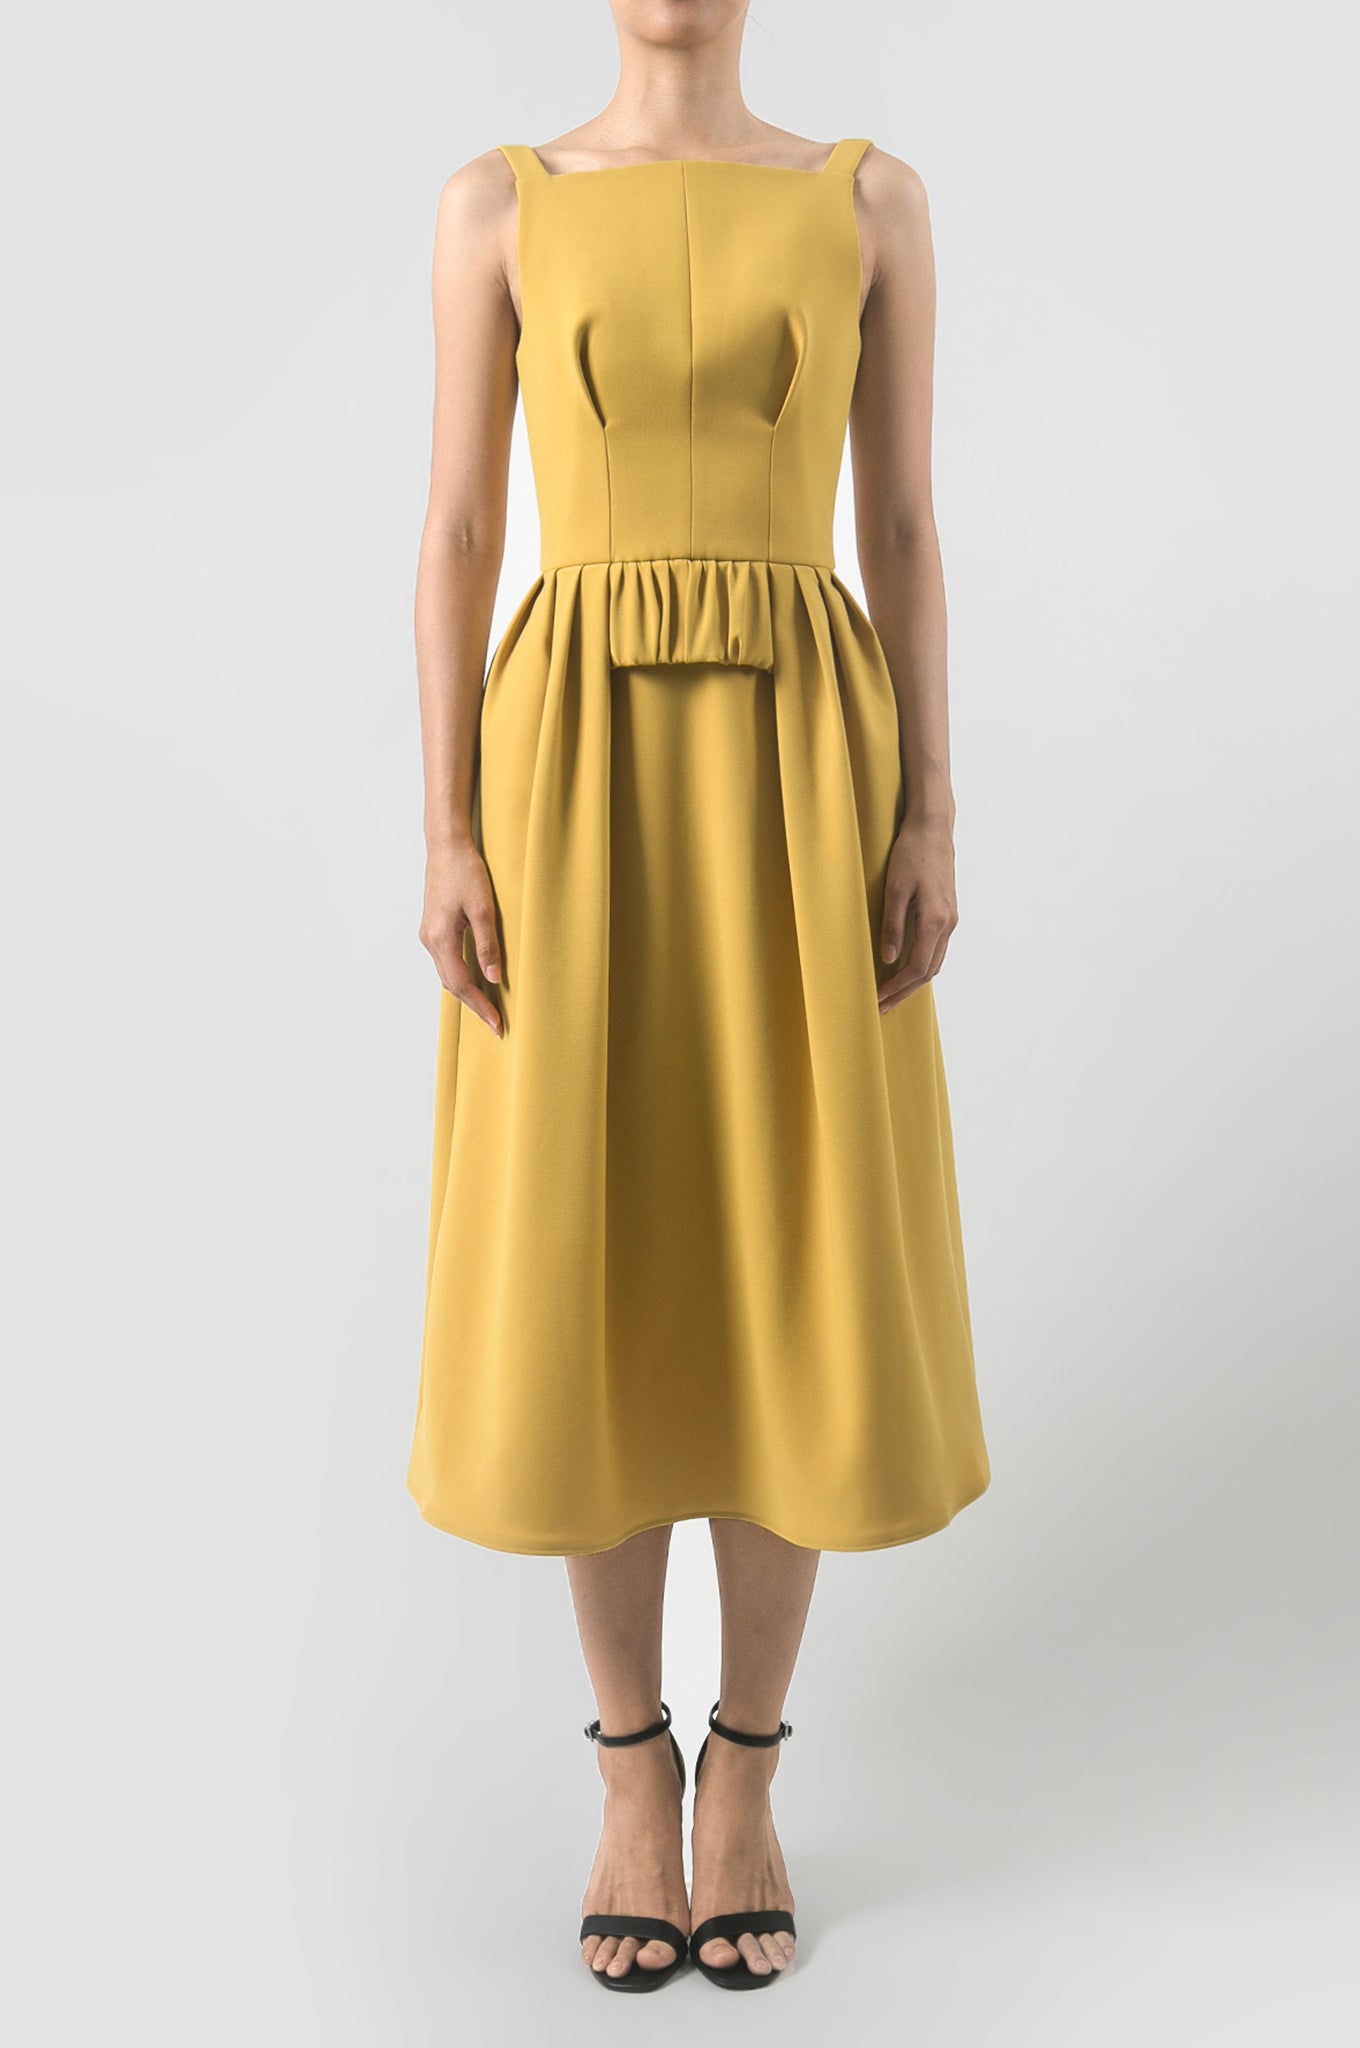 Kumera Yellow Imprint Dress